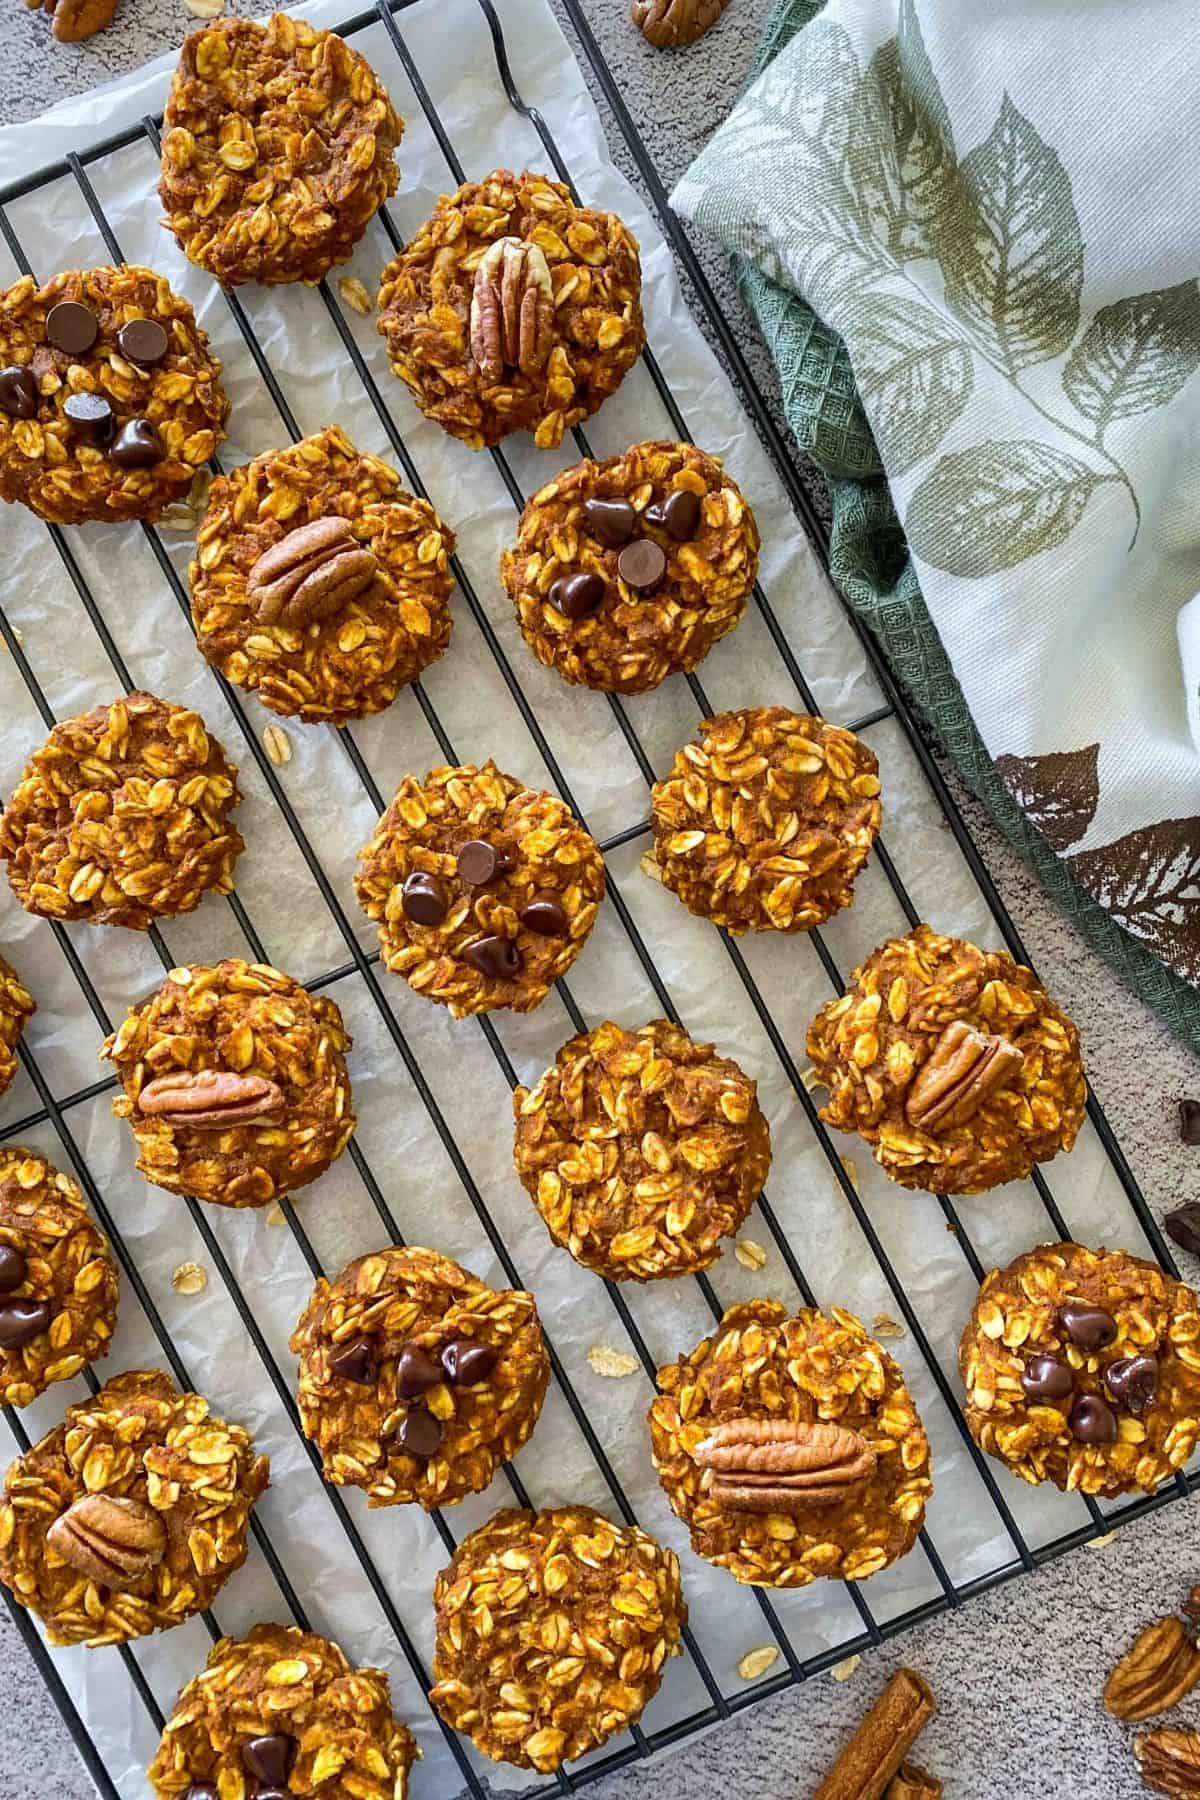 Pumpkin oatmeal cookies with chocolate chips and pecan halves on cooling rack.